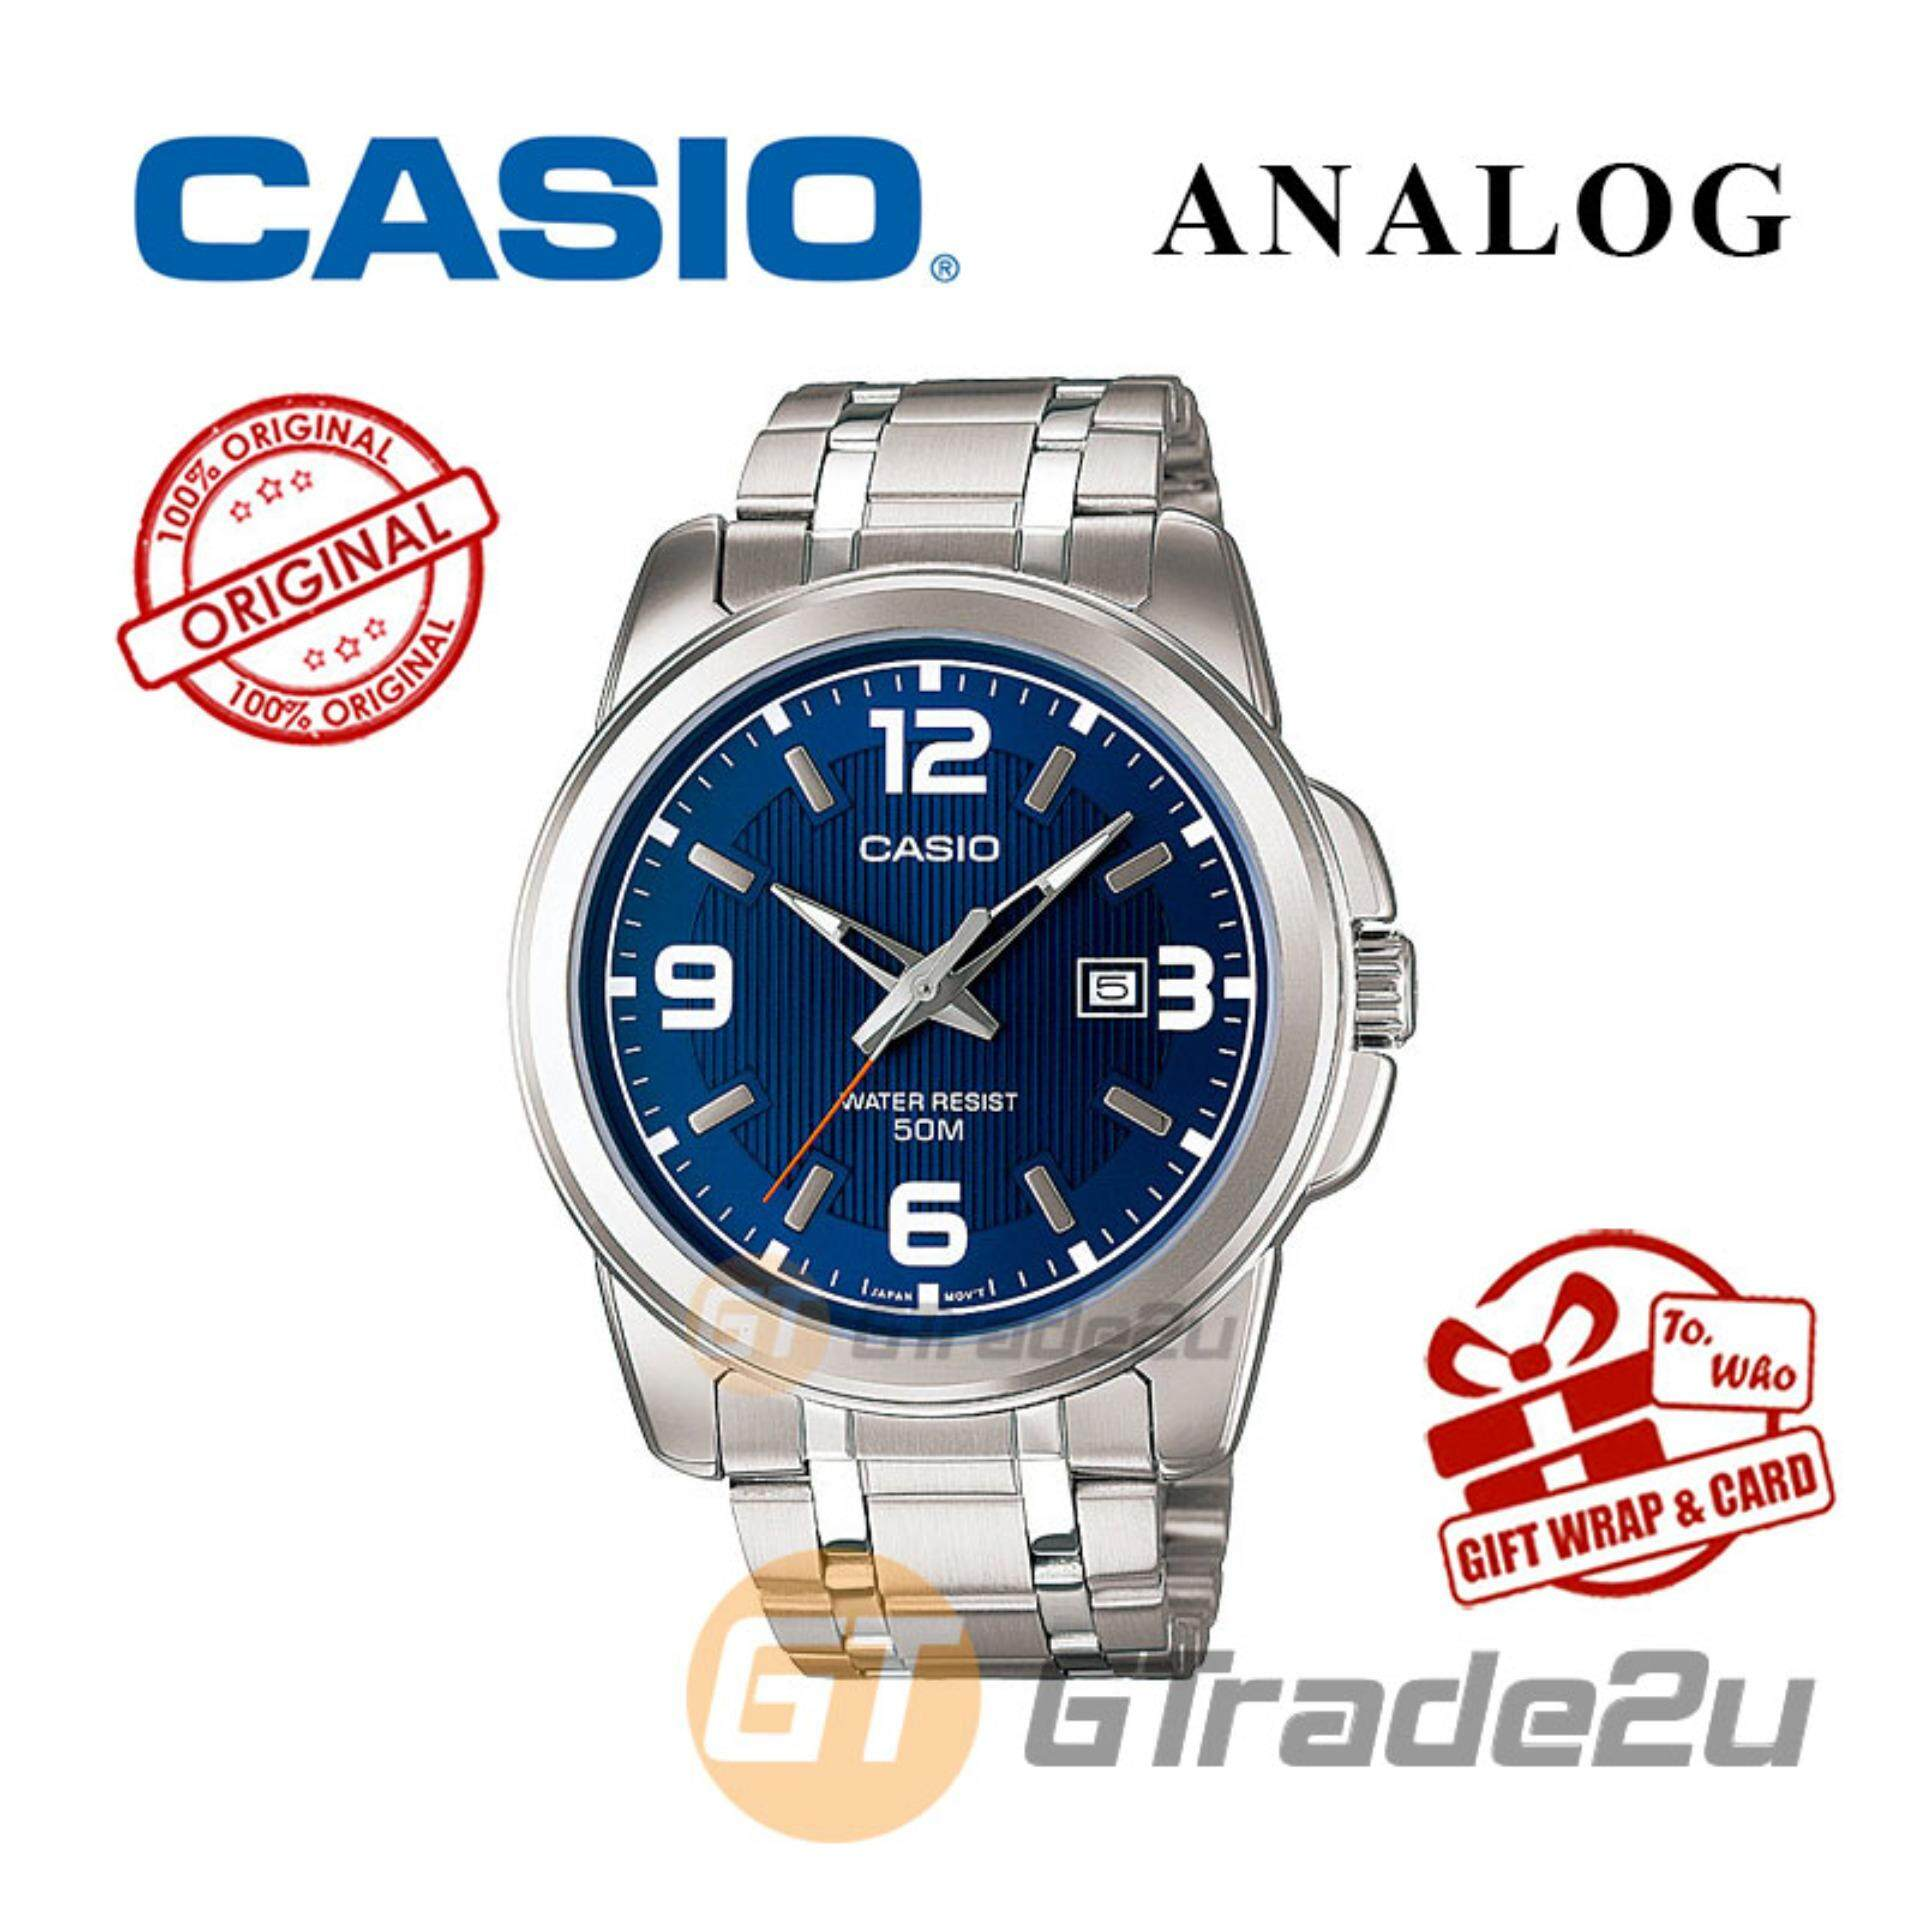 mdv en men ntysr saudi shop enticer ksyw buy low analog watches price casio in